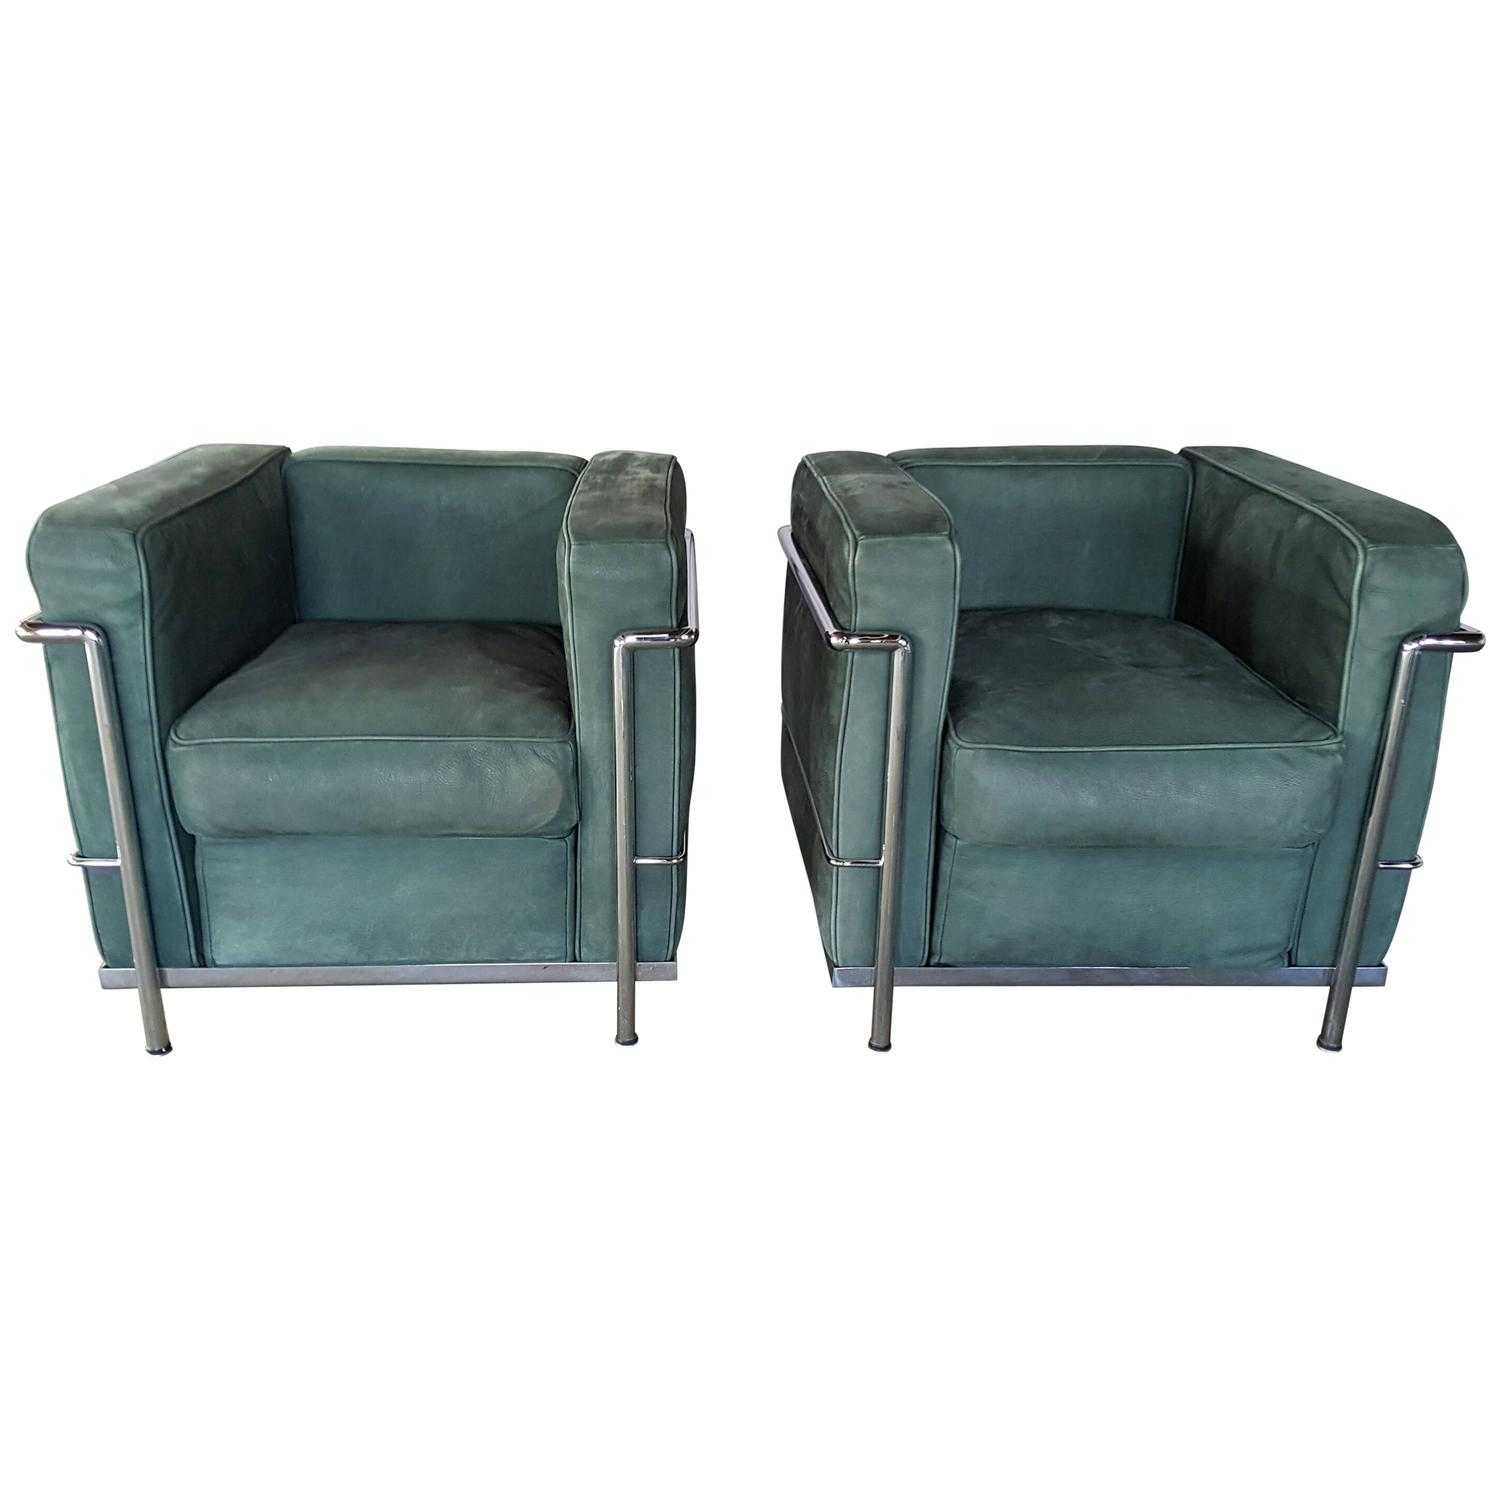 Pair of Le Corbusier LC2 Lounge Chairs Green Suede and